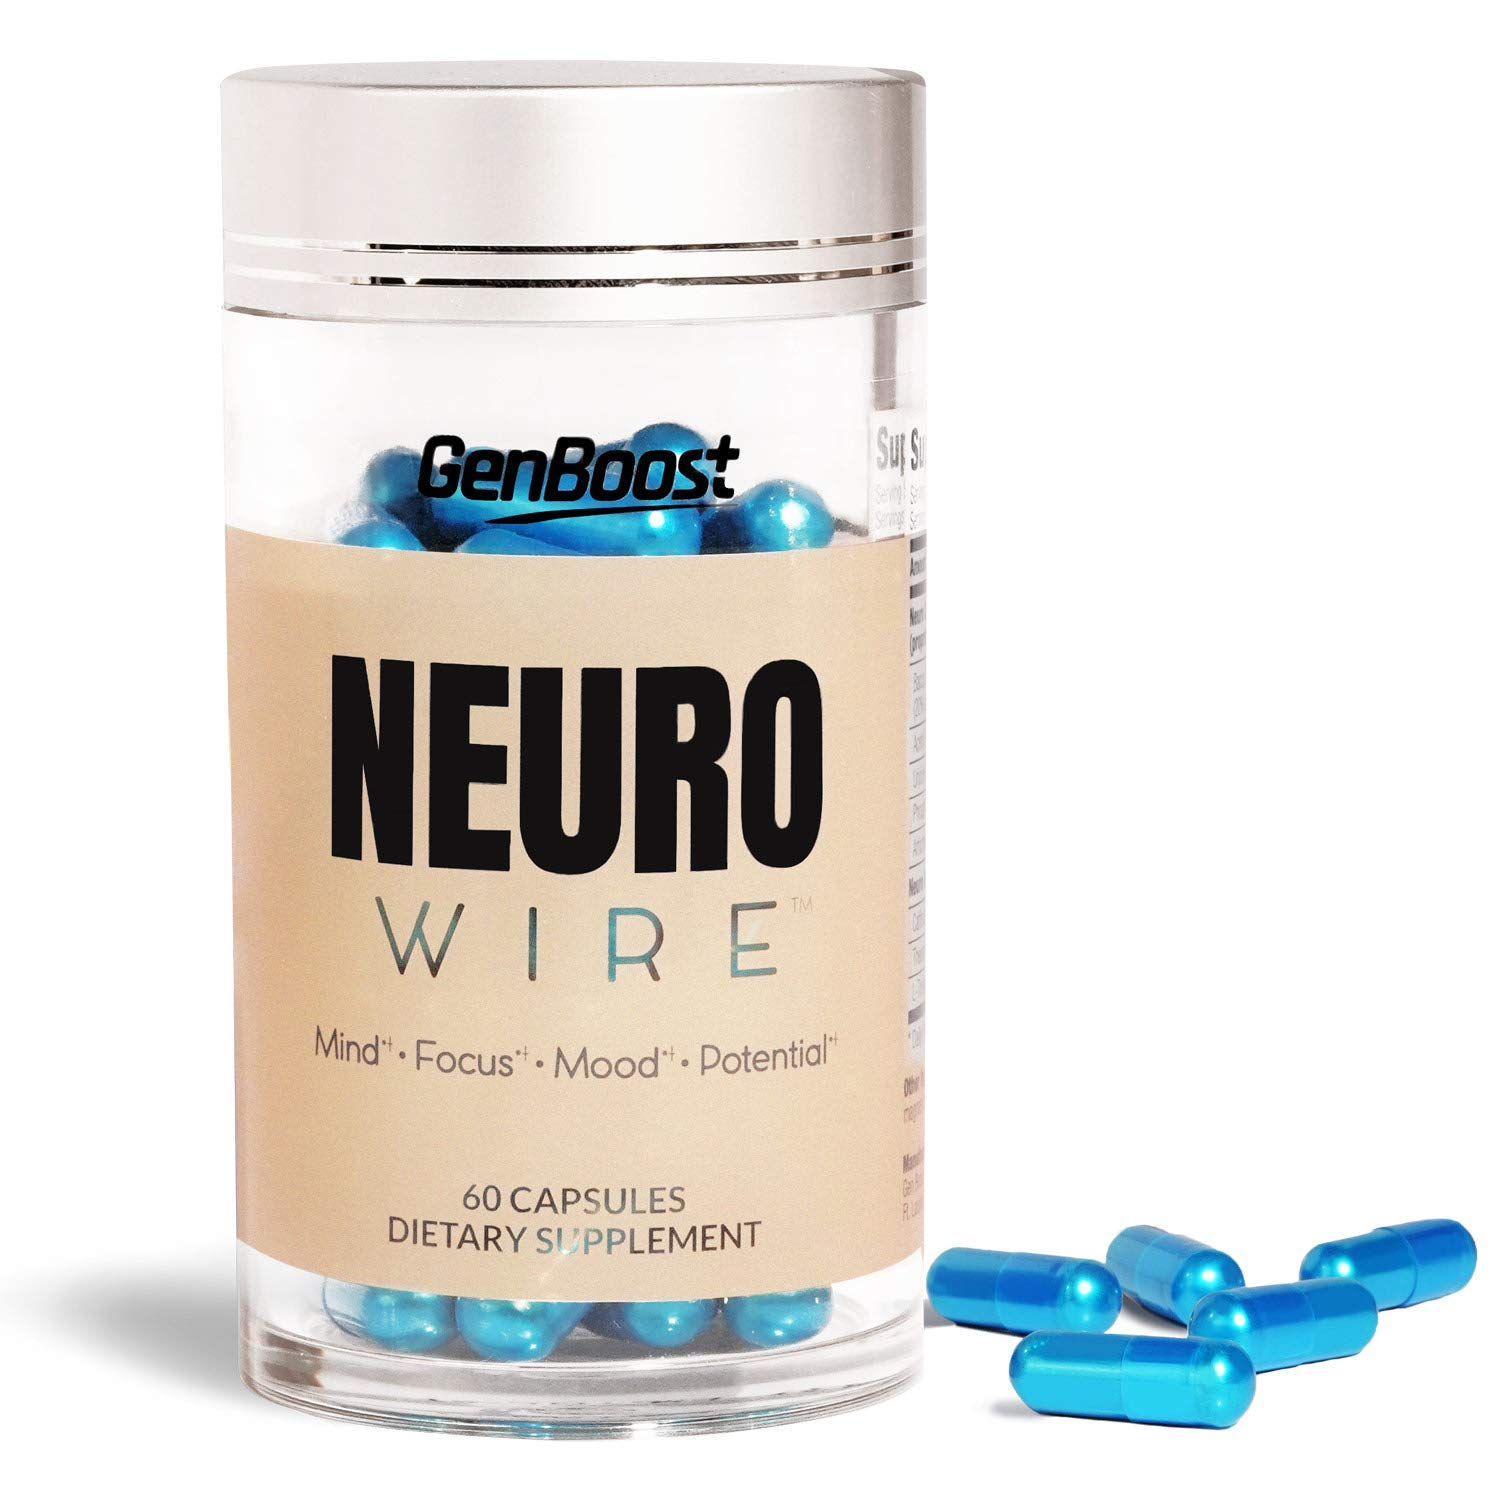 Neuro Wire Brain Performance Supplement (30 Serv) - Memory, Focus & Energy Formula - Nootropic Scientifically Formulated with Quality Ingredients - Bacopa Monnieri, Uridine, Acetyl L Carnitine & More